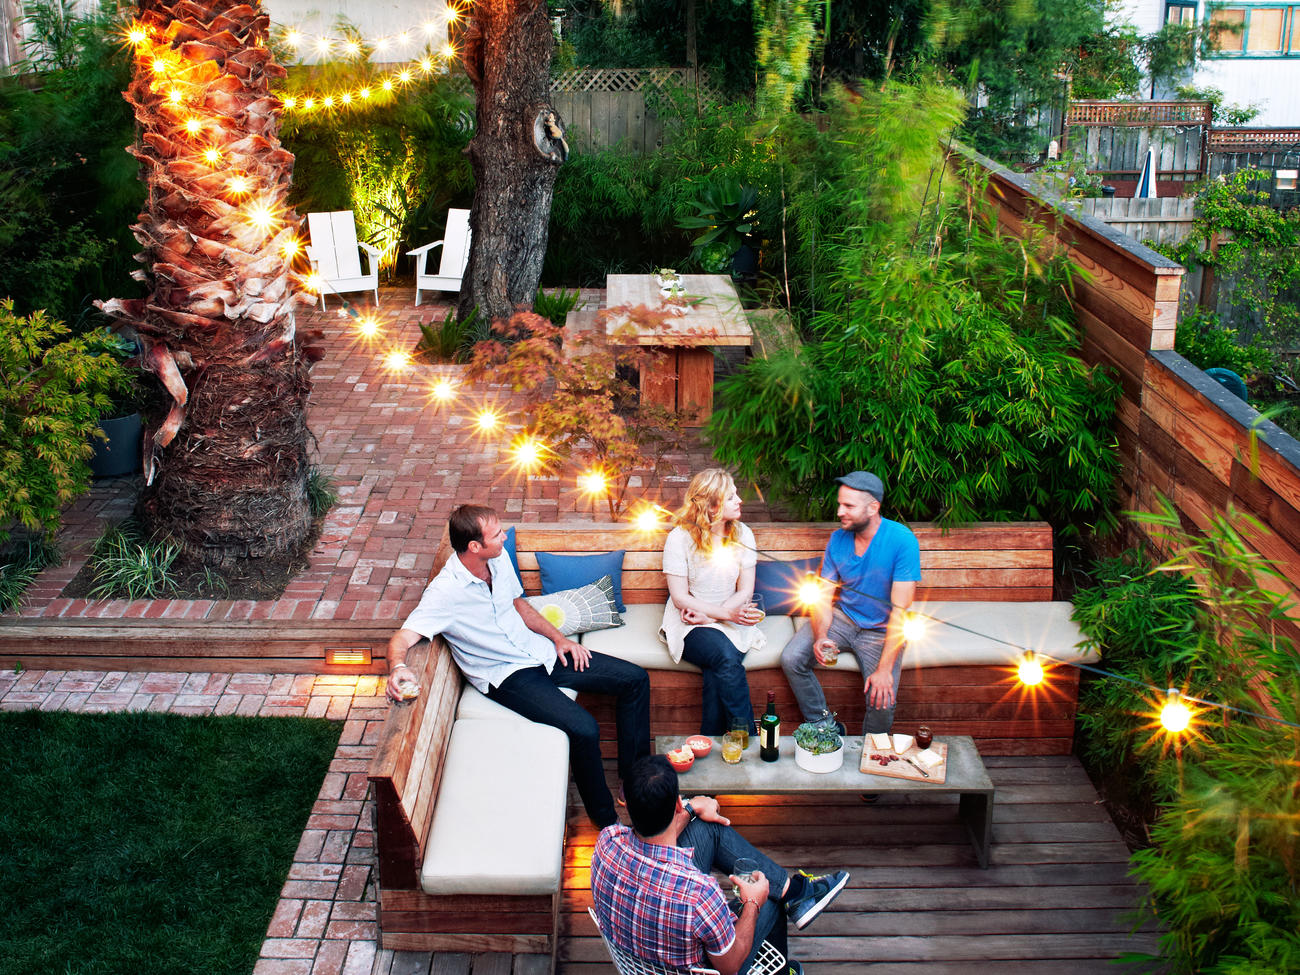 Amazing Backyard Ideas - Sunset - Sunset Magazine on garden irrigation ideas, sunset magazine landscaping ideas, sunset party ideas, diy container gardening ideas, southern california landscape ideas, sunset decorating ideas, sunset magazine garden, sunset magazine container gardening, garden and outdoor living ideas, sunset bbq ideas, sunset patios, sunset room ideas, sunset furniture, sunset bathroom ideas, sunset garden book, sunset picnic ideas, sunset summer, sunset design ideas, sunset storage ideas, sunset painting ideas,